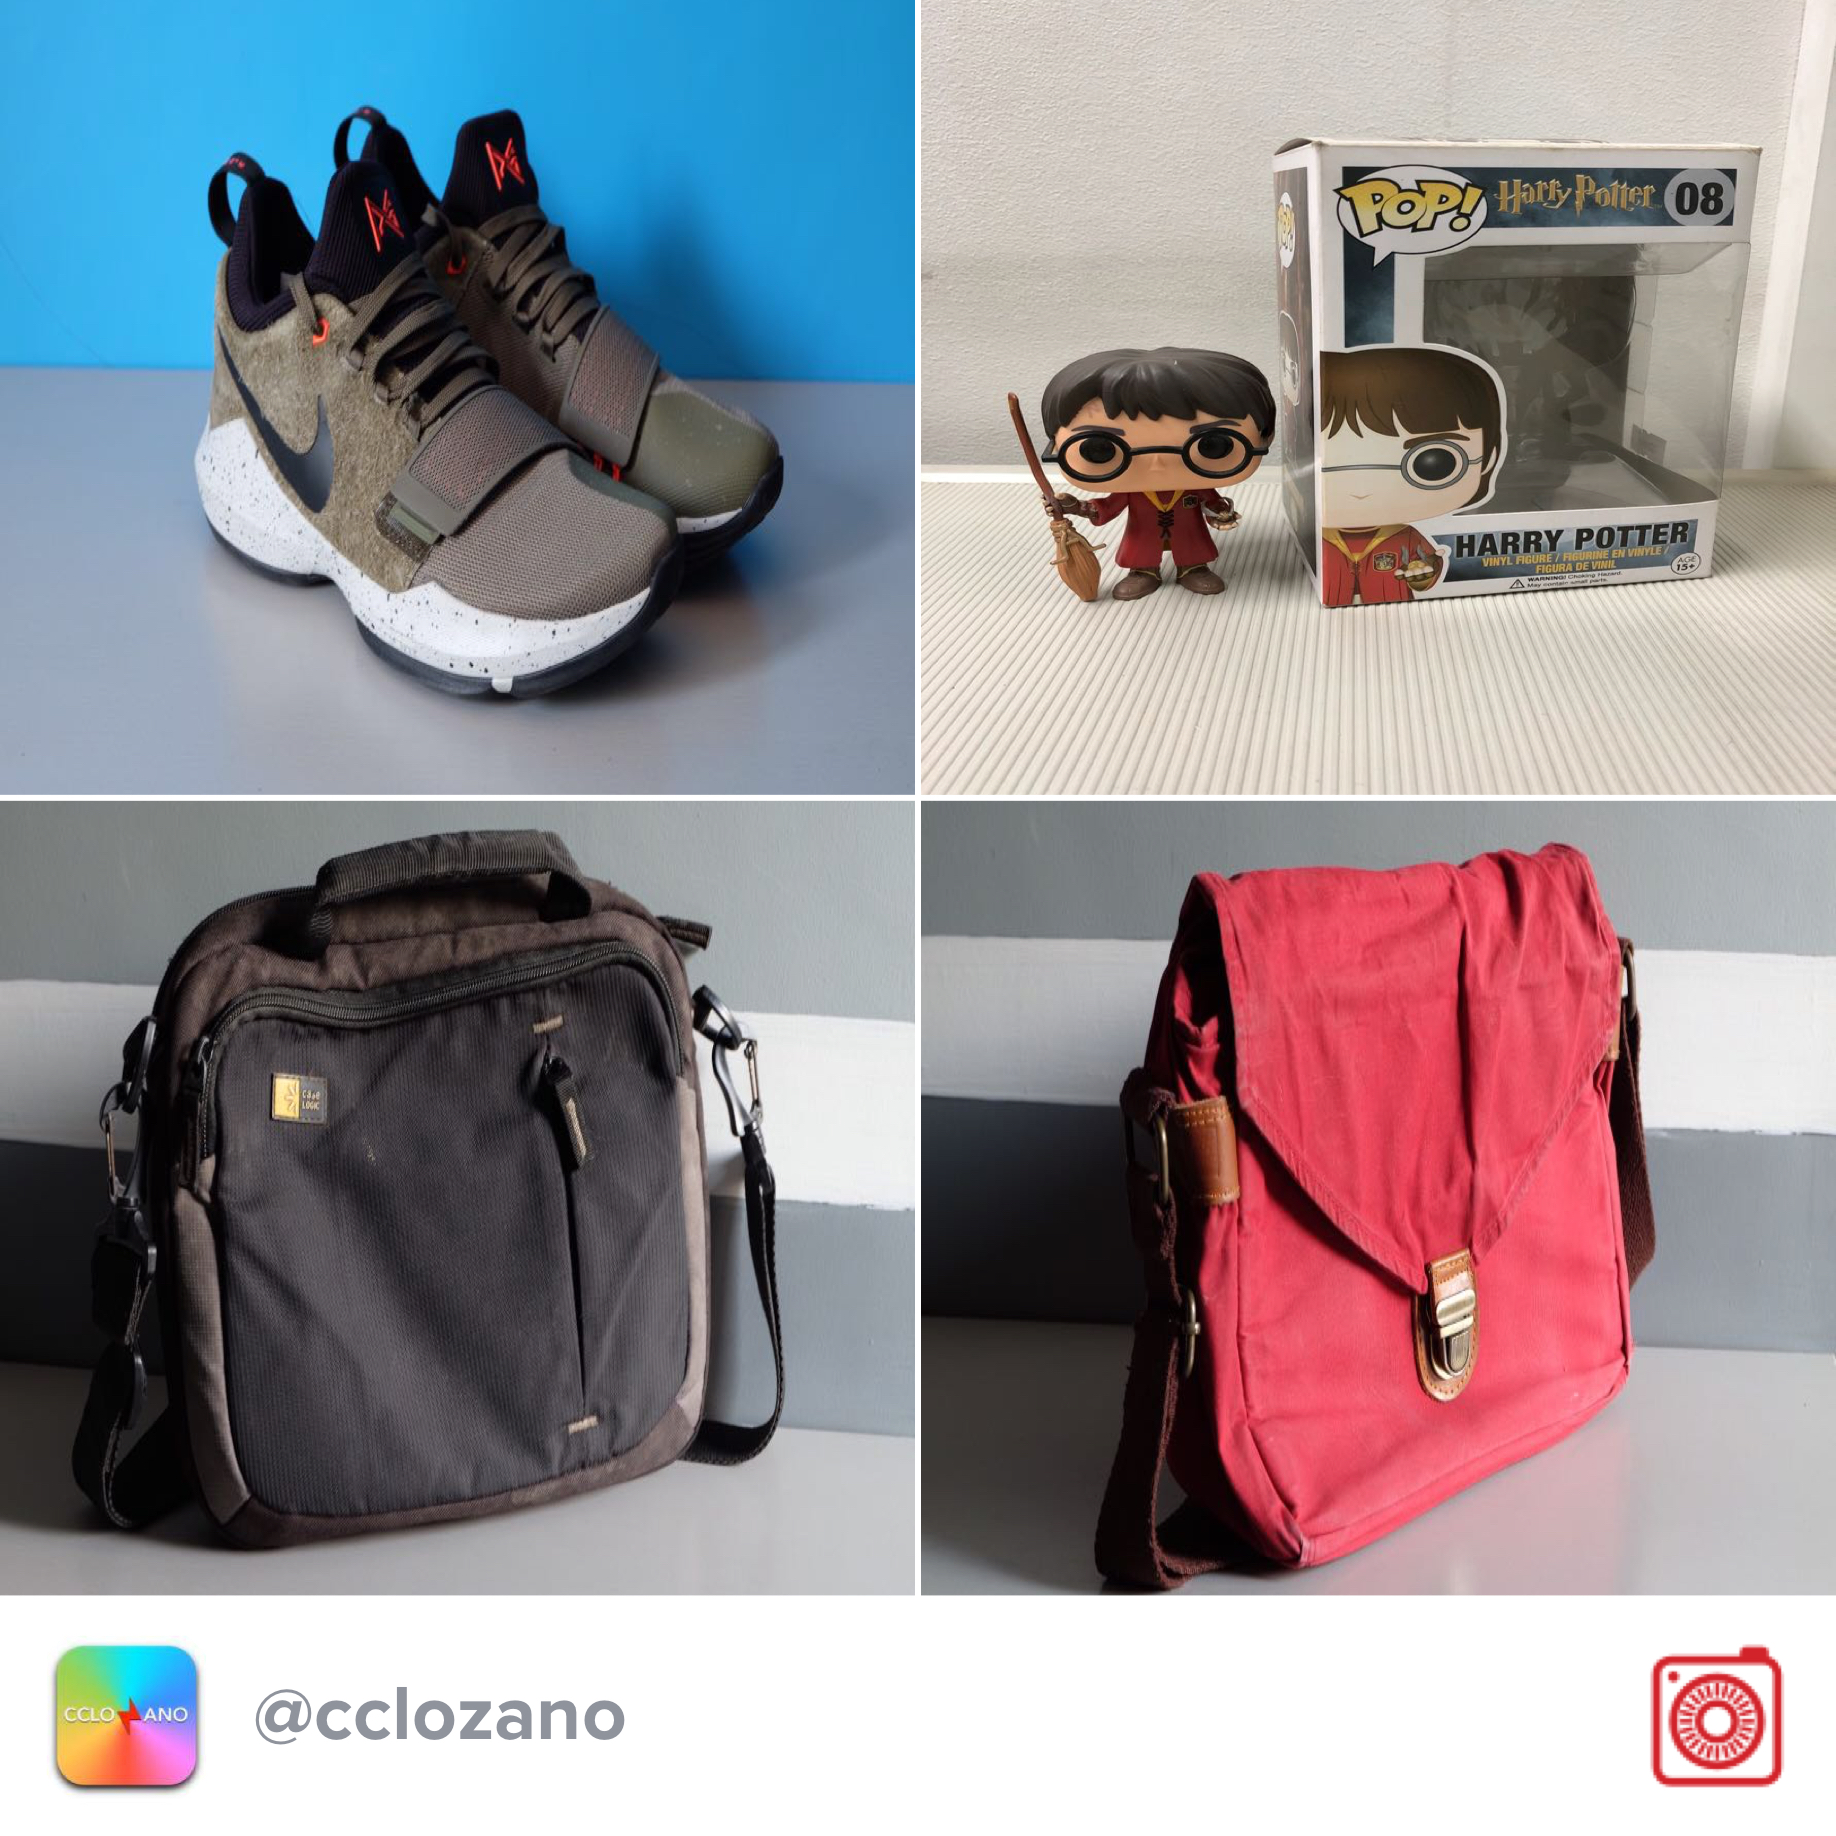 Check out my items on sale at carousell.com/cclozano